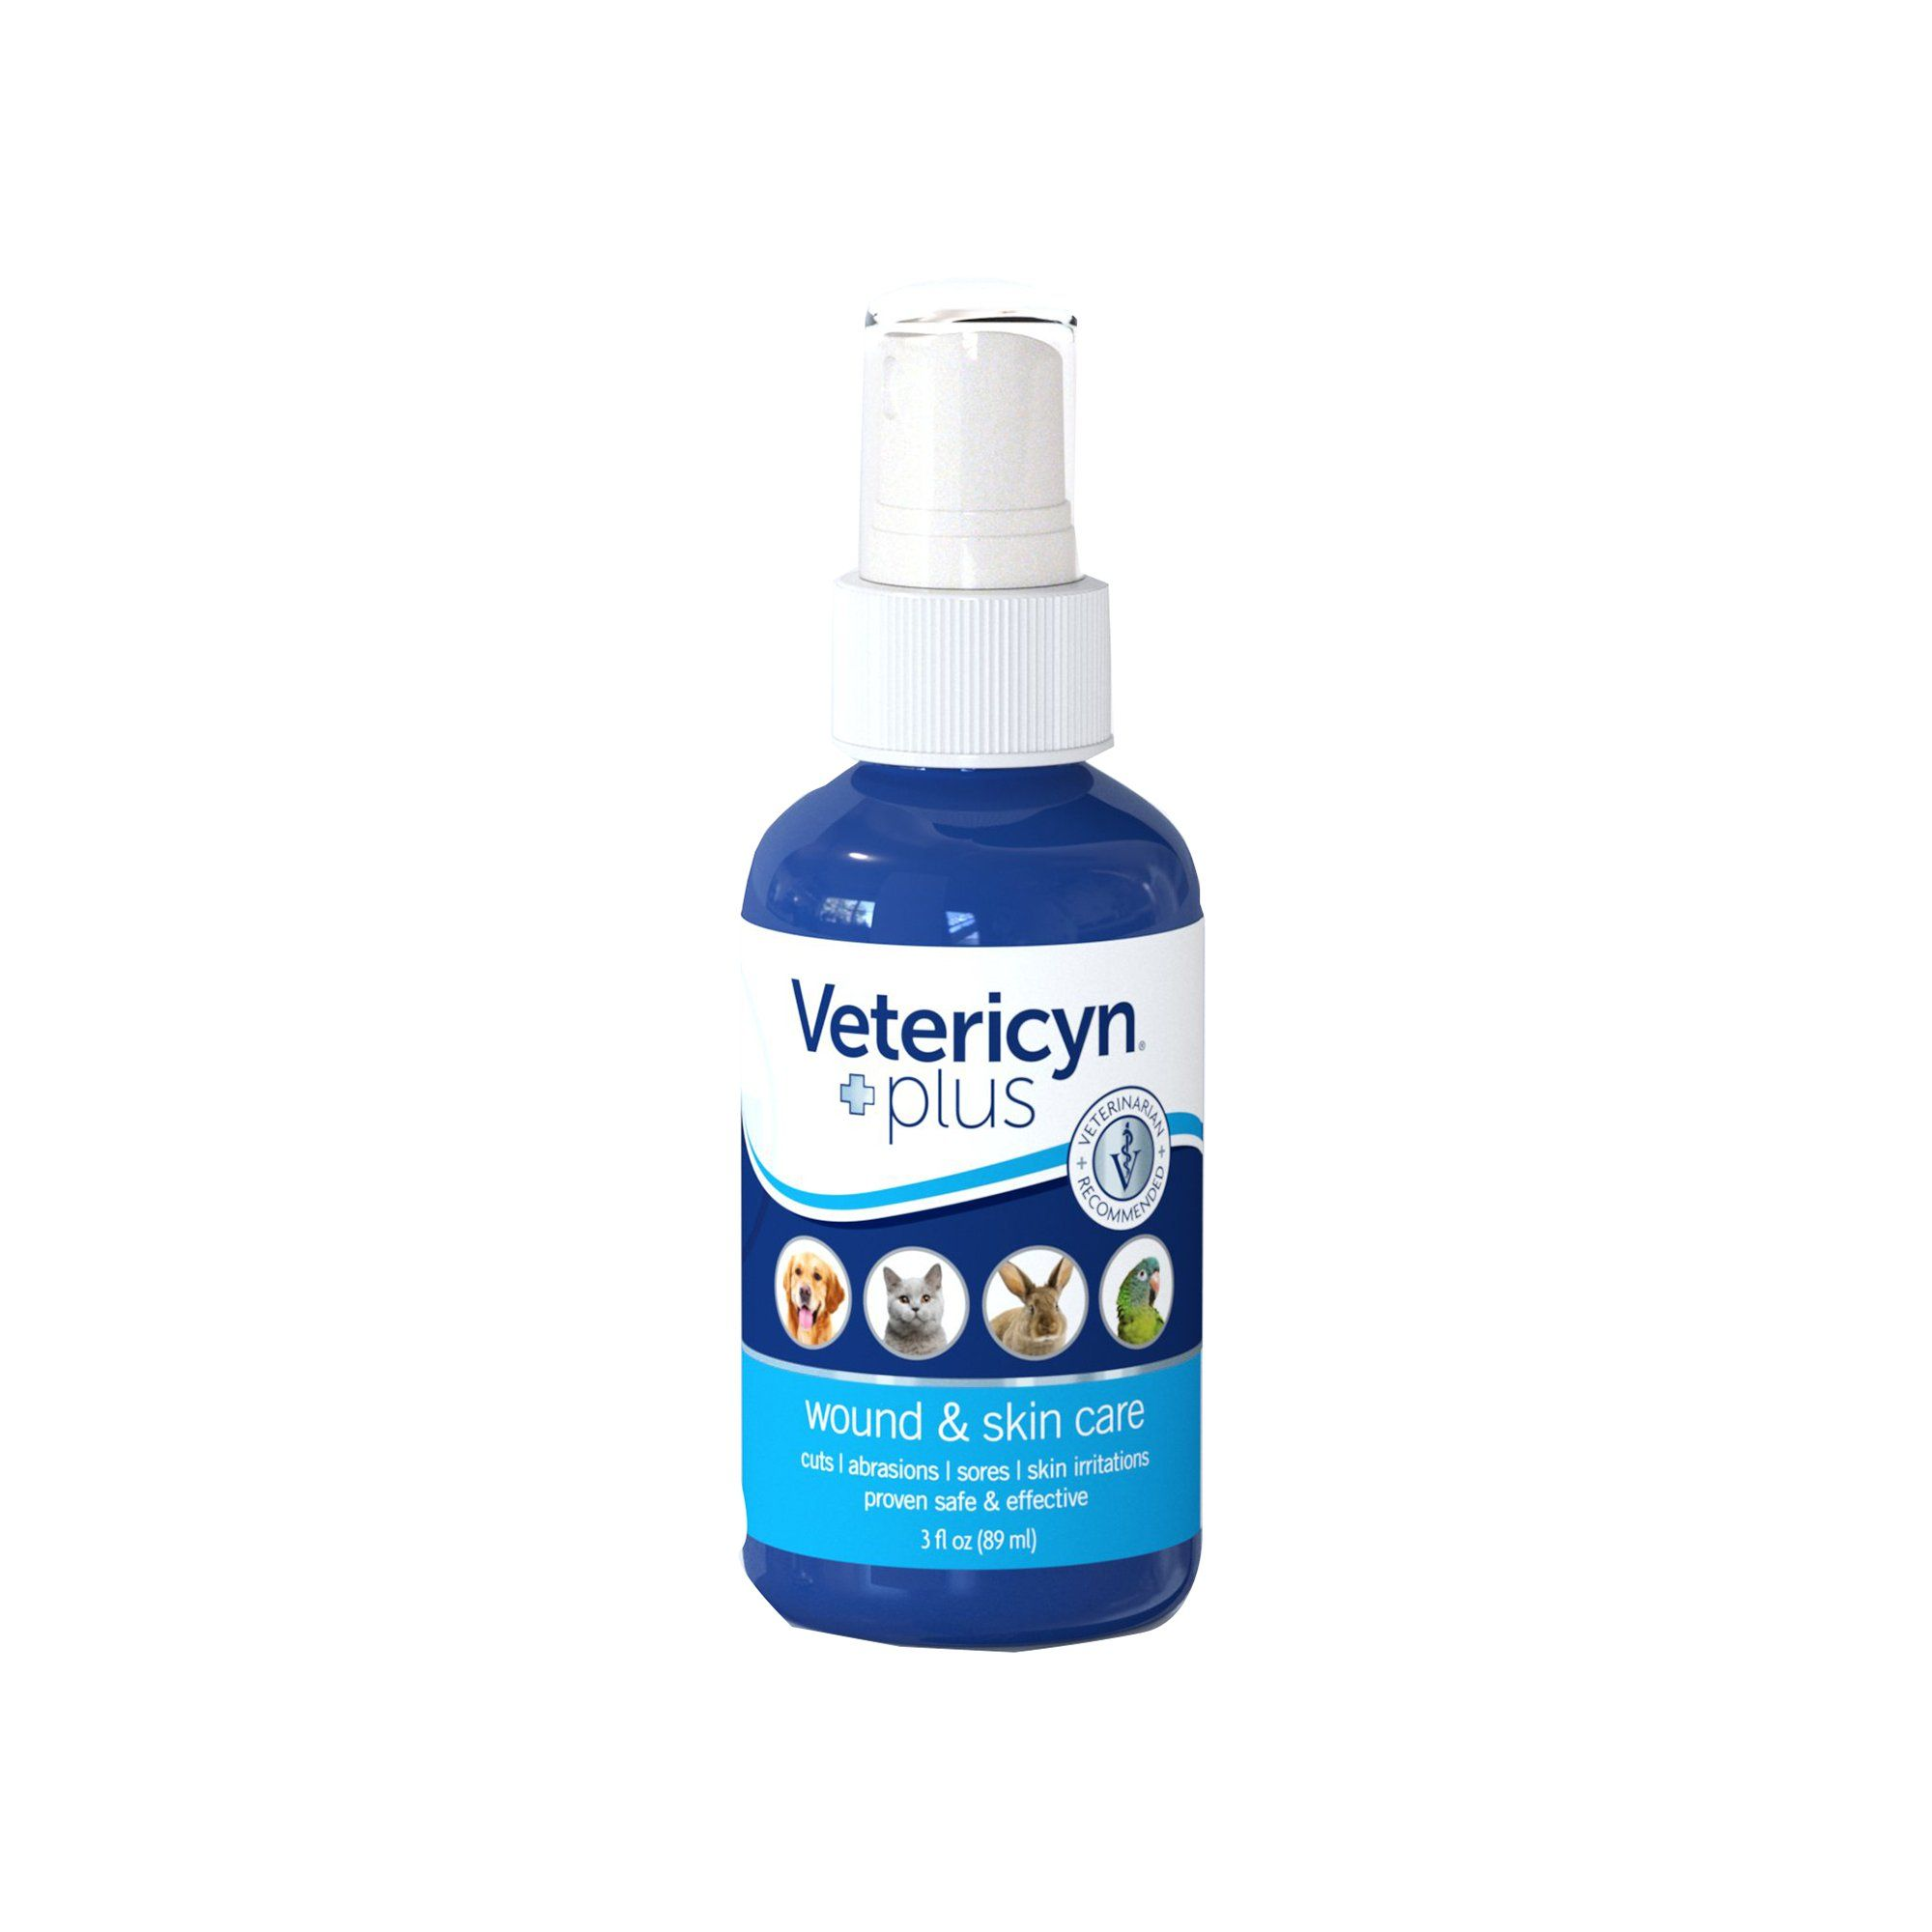 Vetericyn Plus Wound & Skin Care for Dogs, 3 fl. oz., 3 FZ